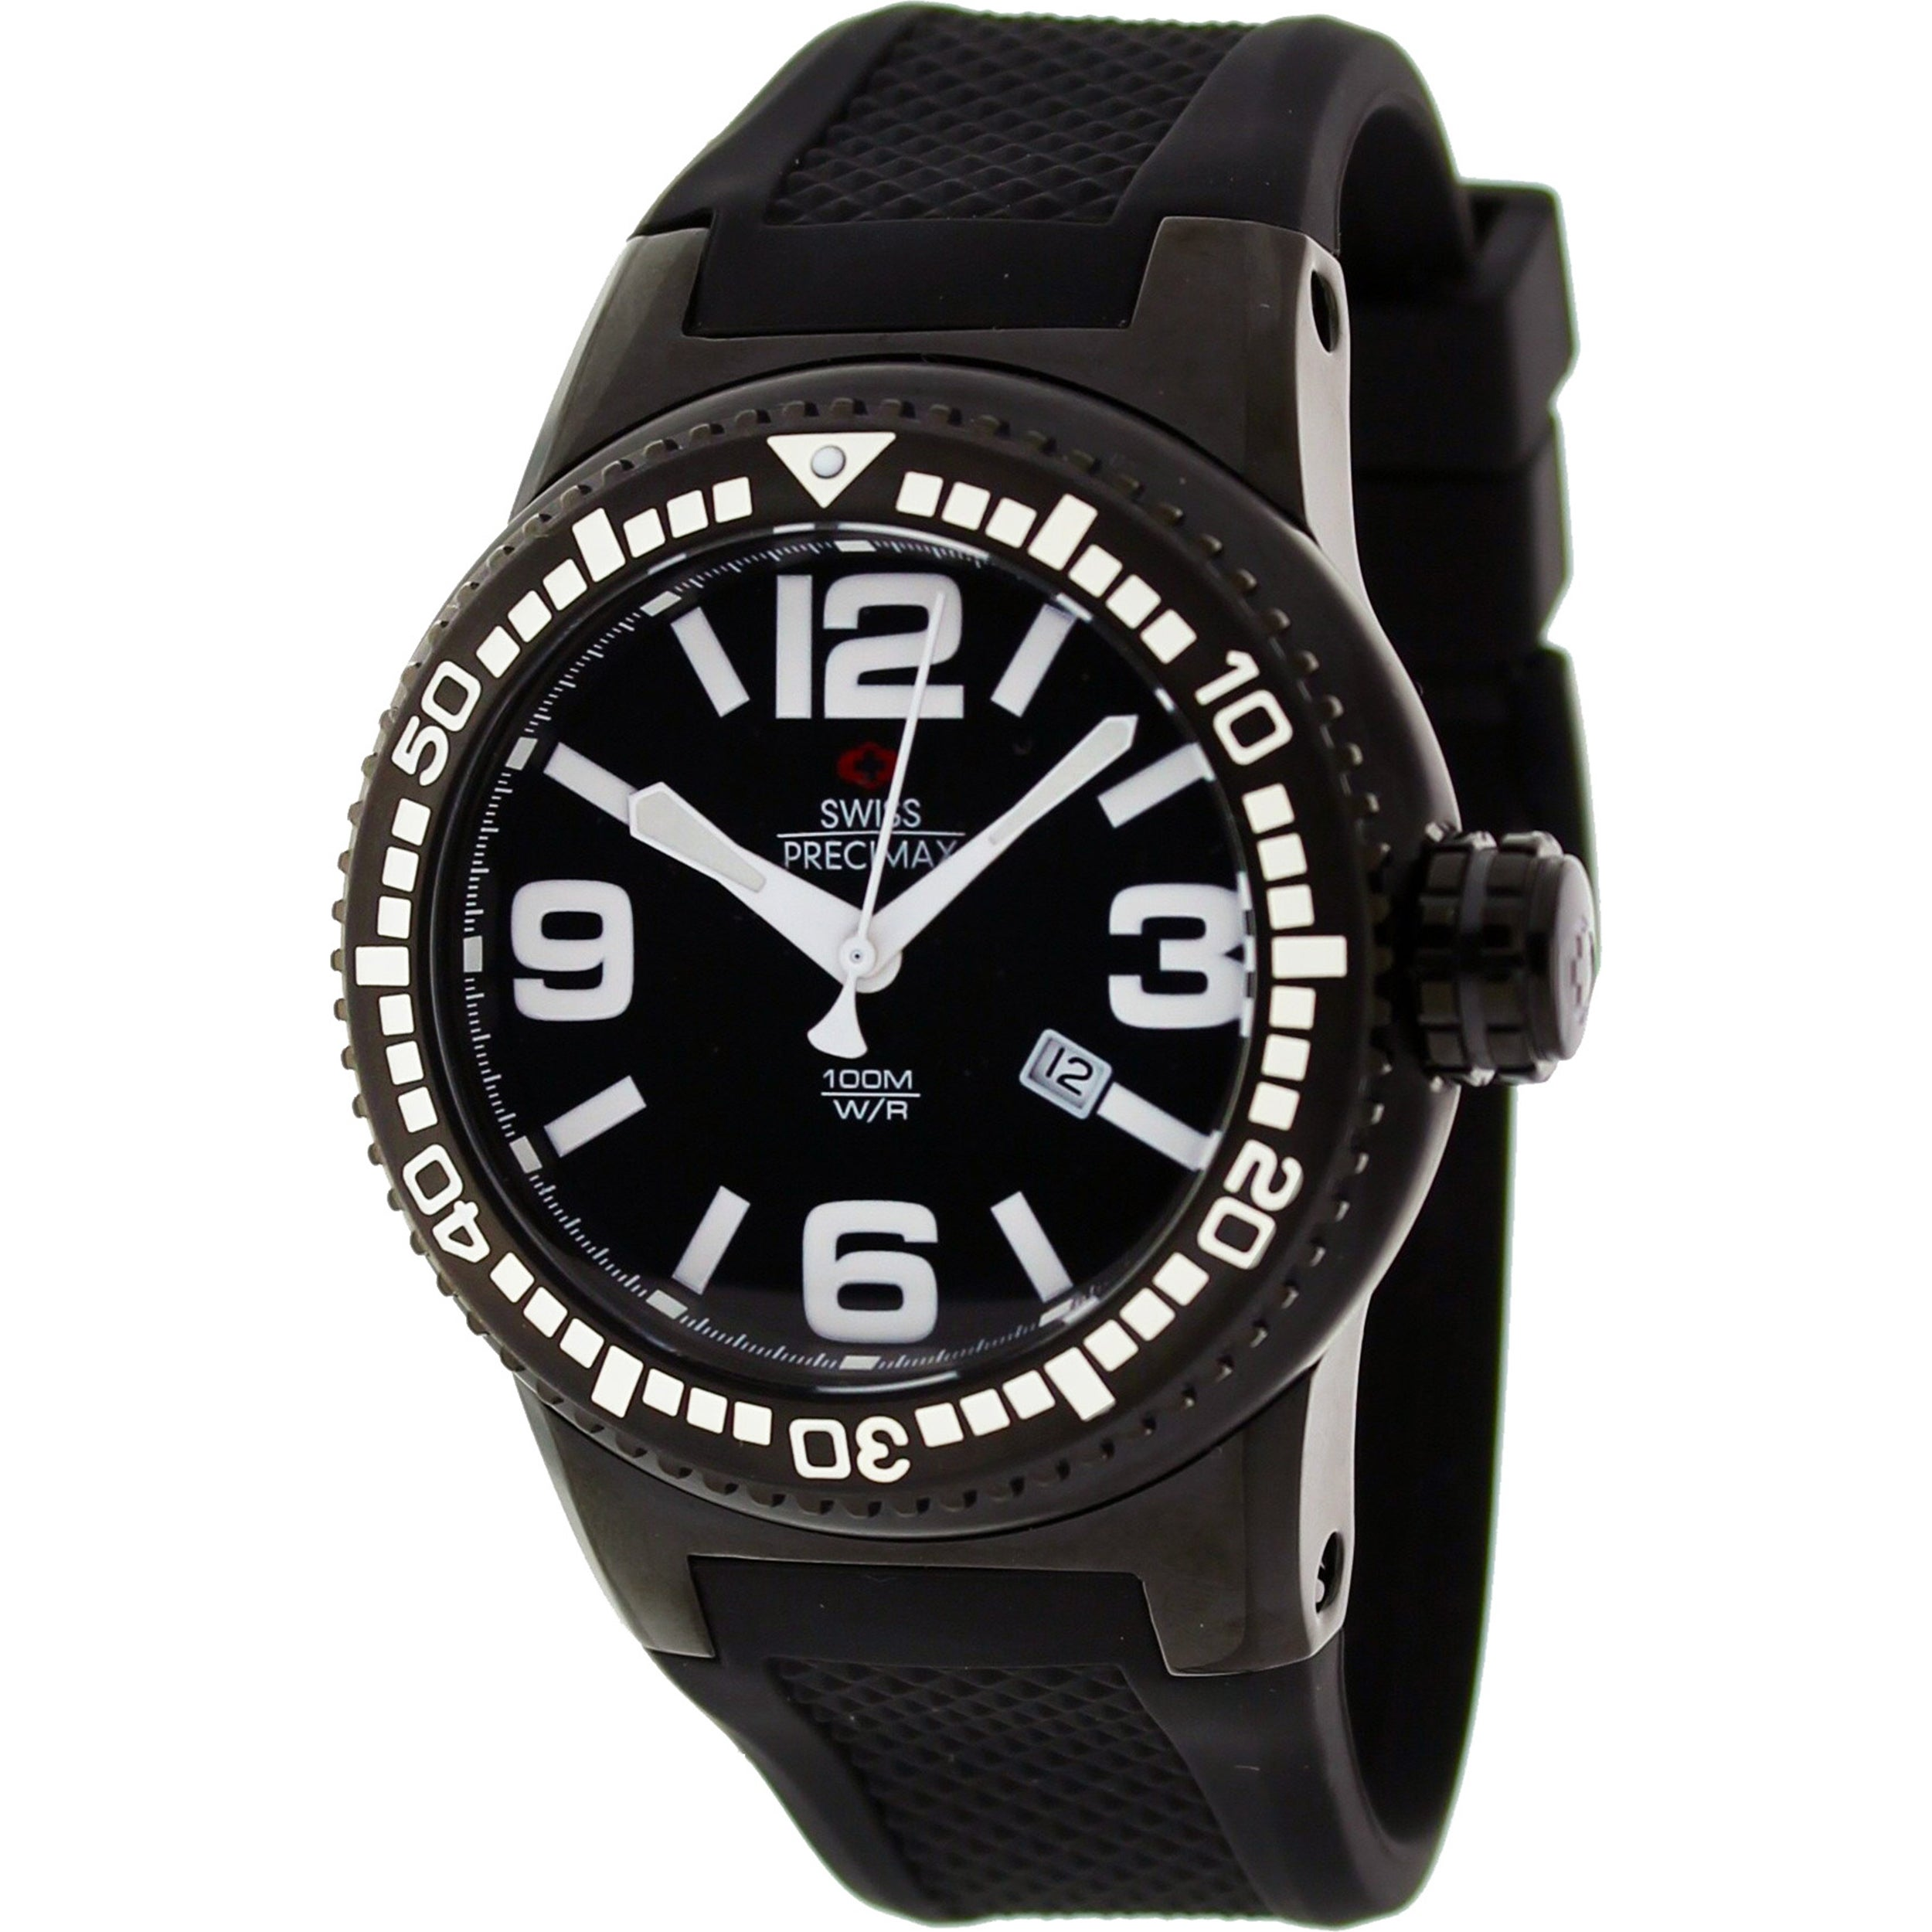 Swiss Precimax Men's Titan Black Dial Watch